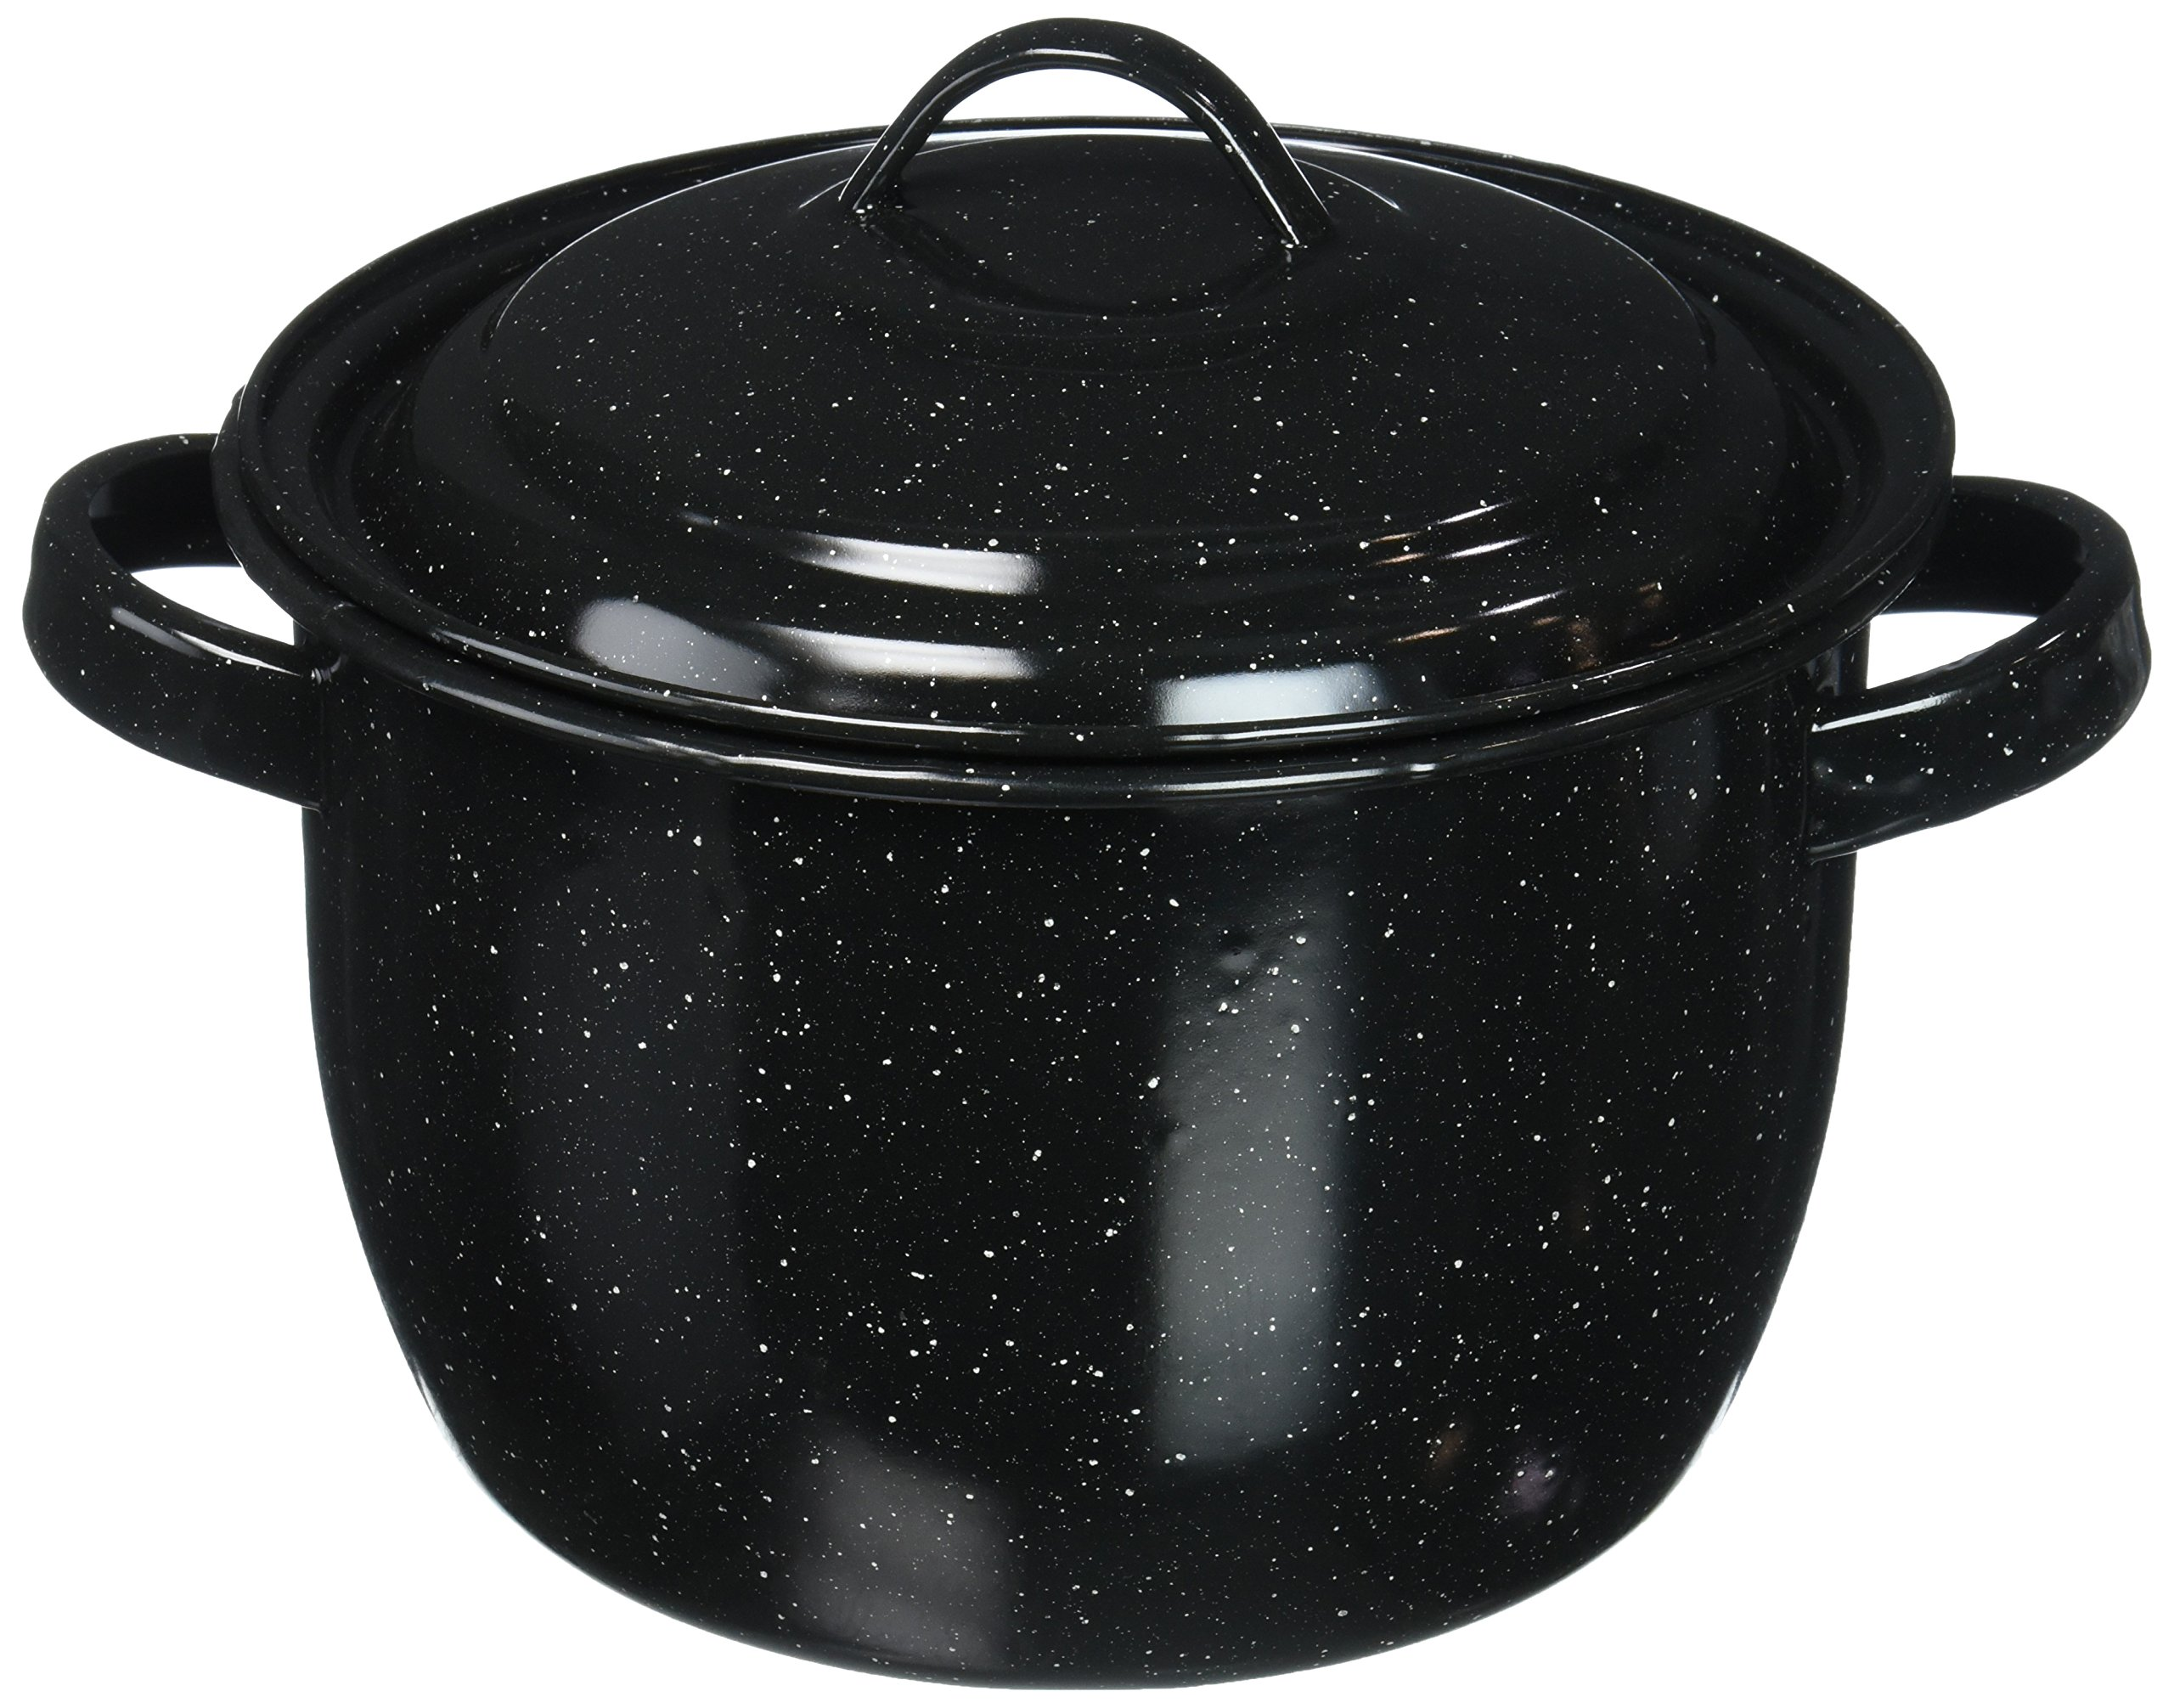 Granite Ware Bean Pot, 4-Quart by Granite Ware